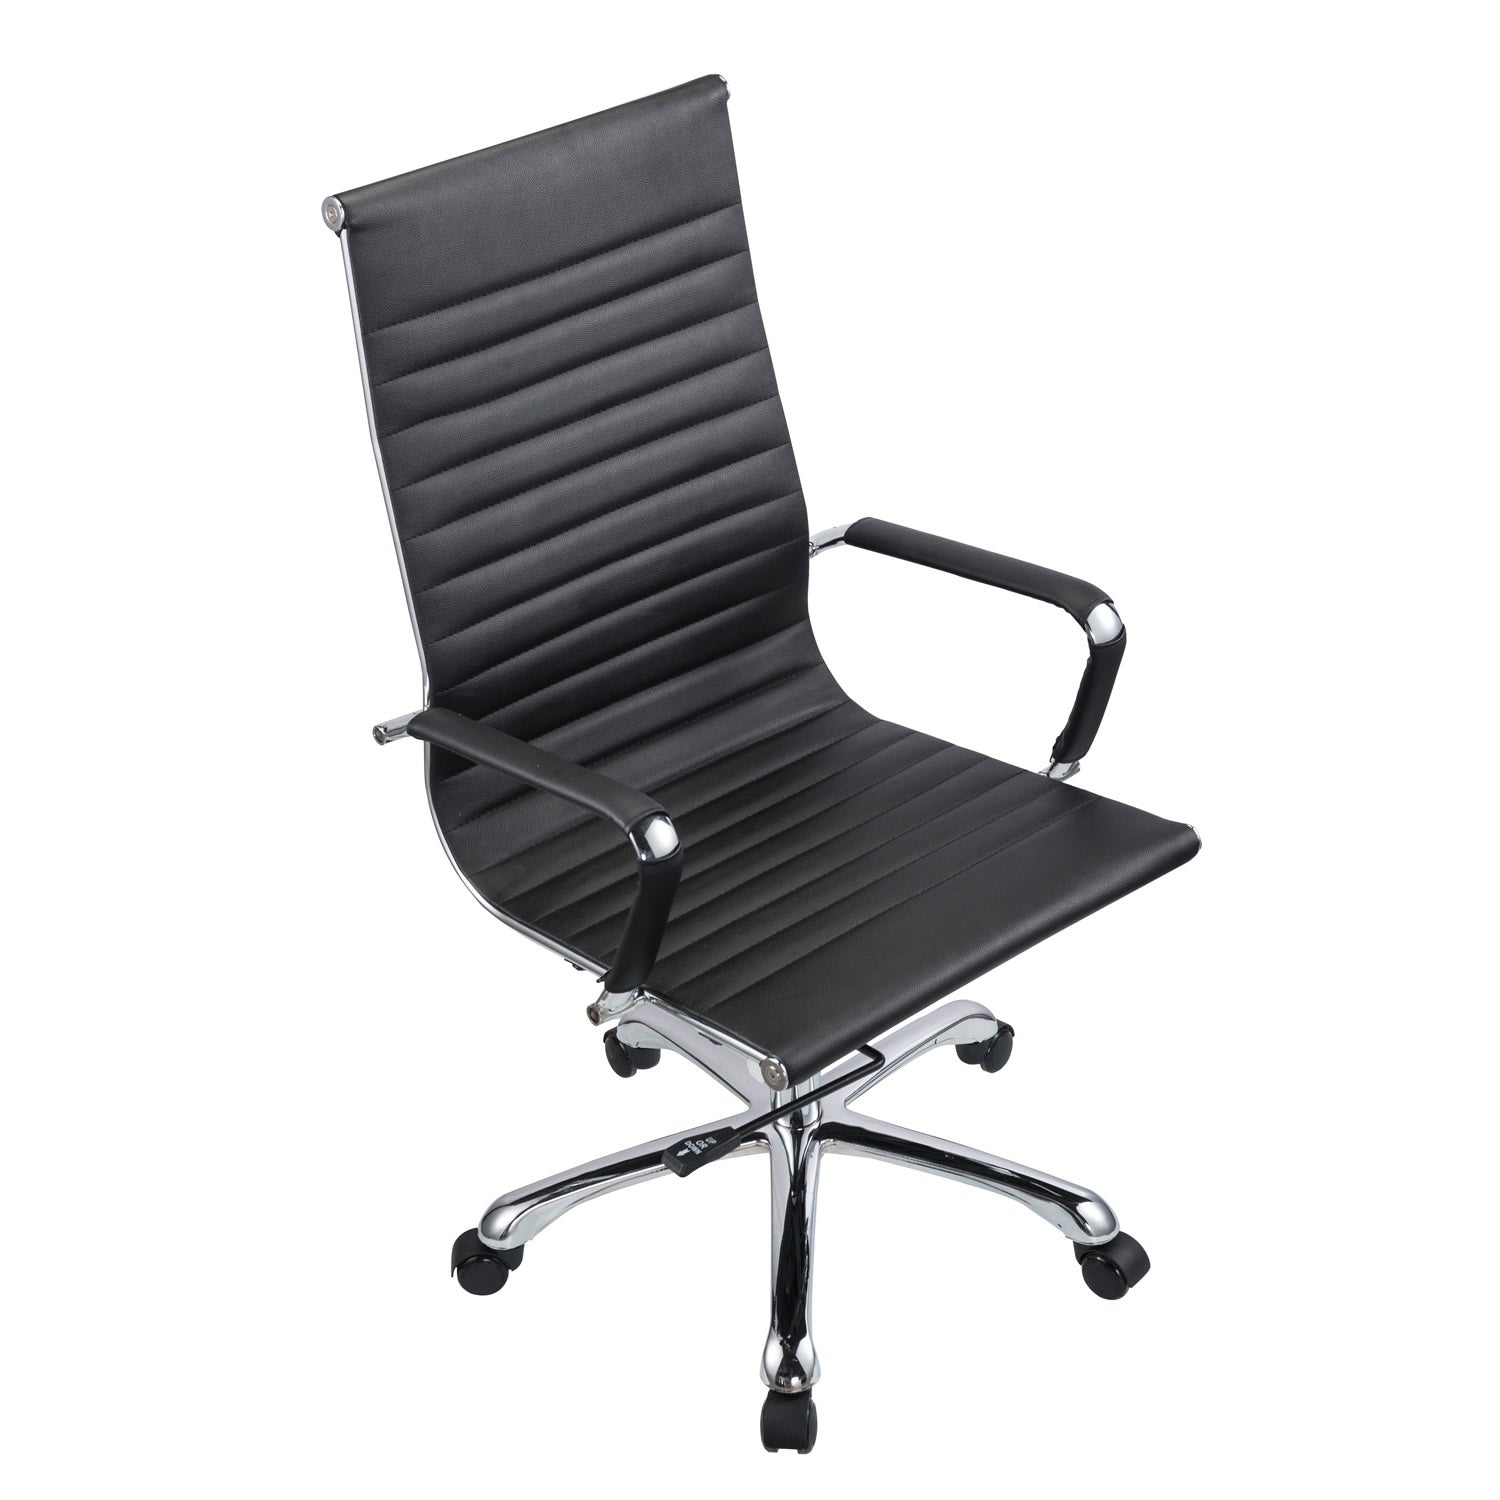 office black. Bikey Nova Collection, High Back Leather Executive Office Chair (Black) Black